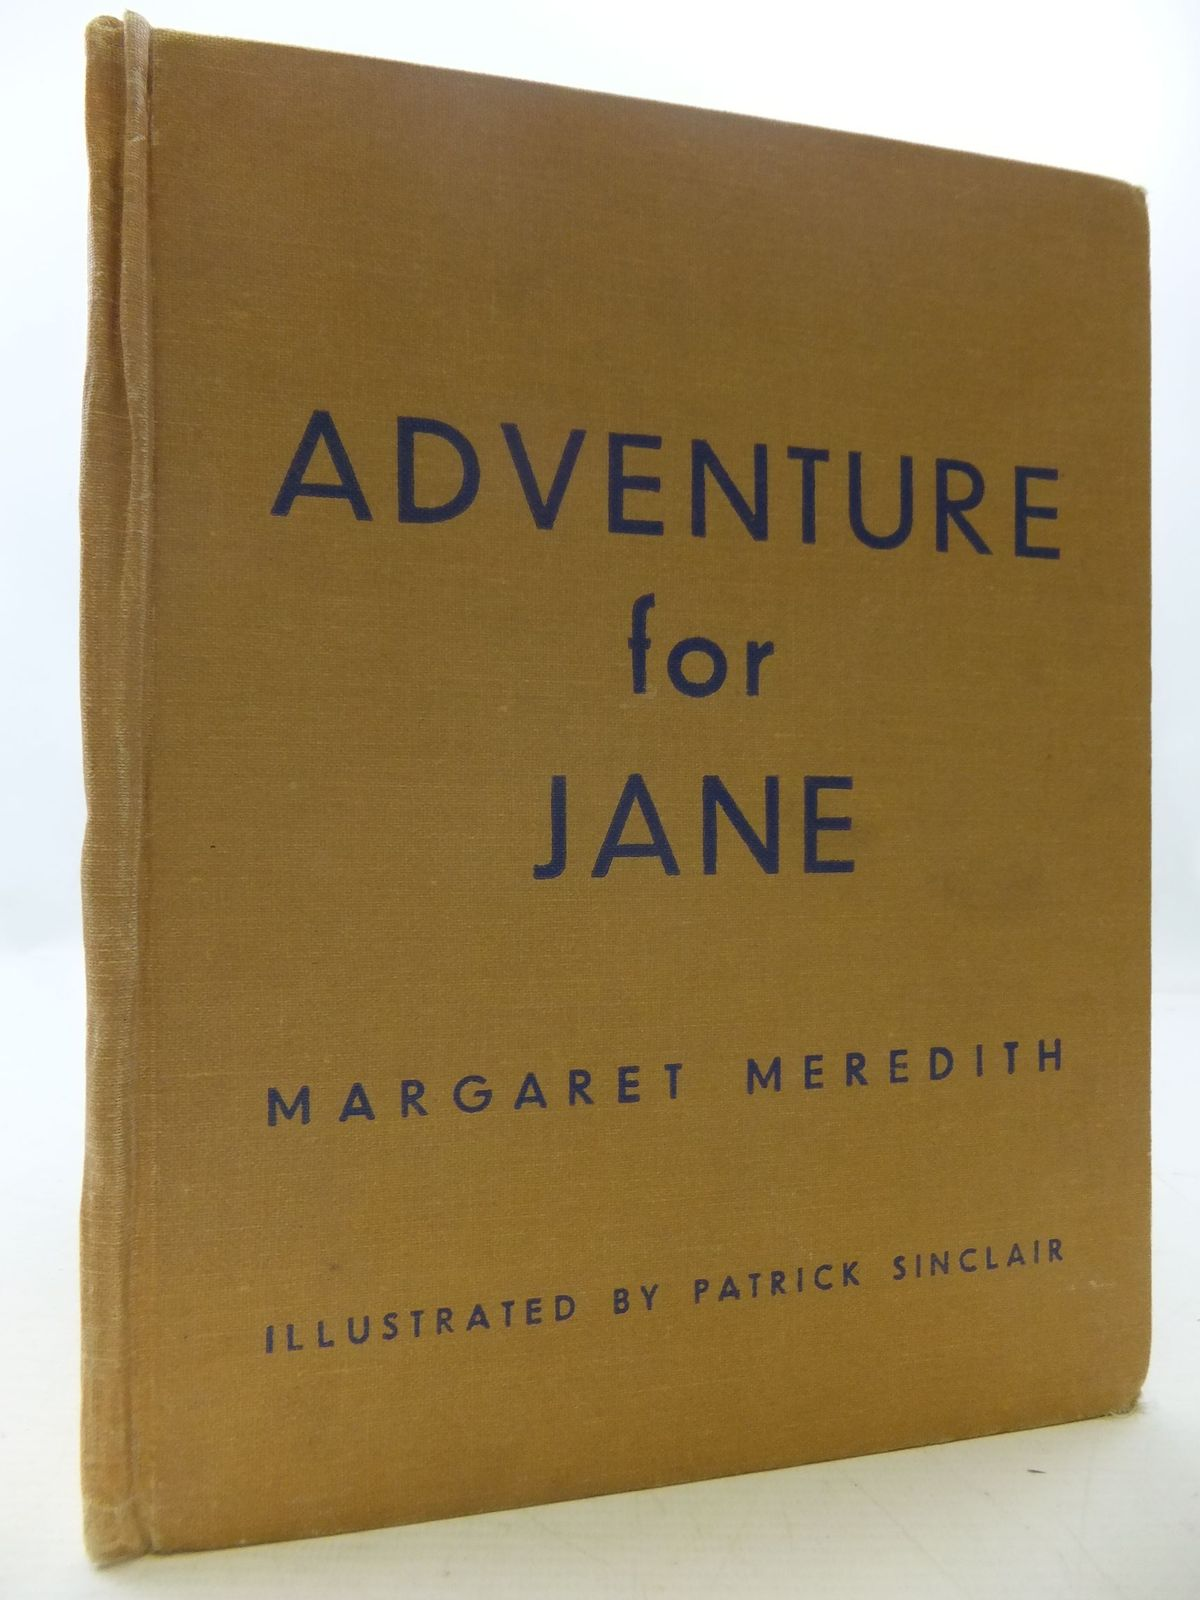 Photo of ADVENTURE FOR JANE written by Meredith, Margaret illustrated by Sinclair, Patrick published by Gordon Martin Publishing Co. Ltd. (STOCK CODE: 1108693)  for sale by Stella & Rose's Books